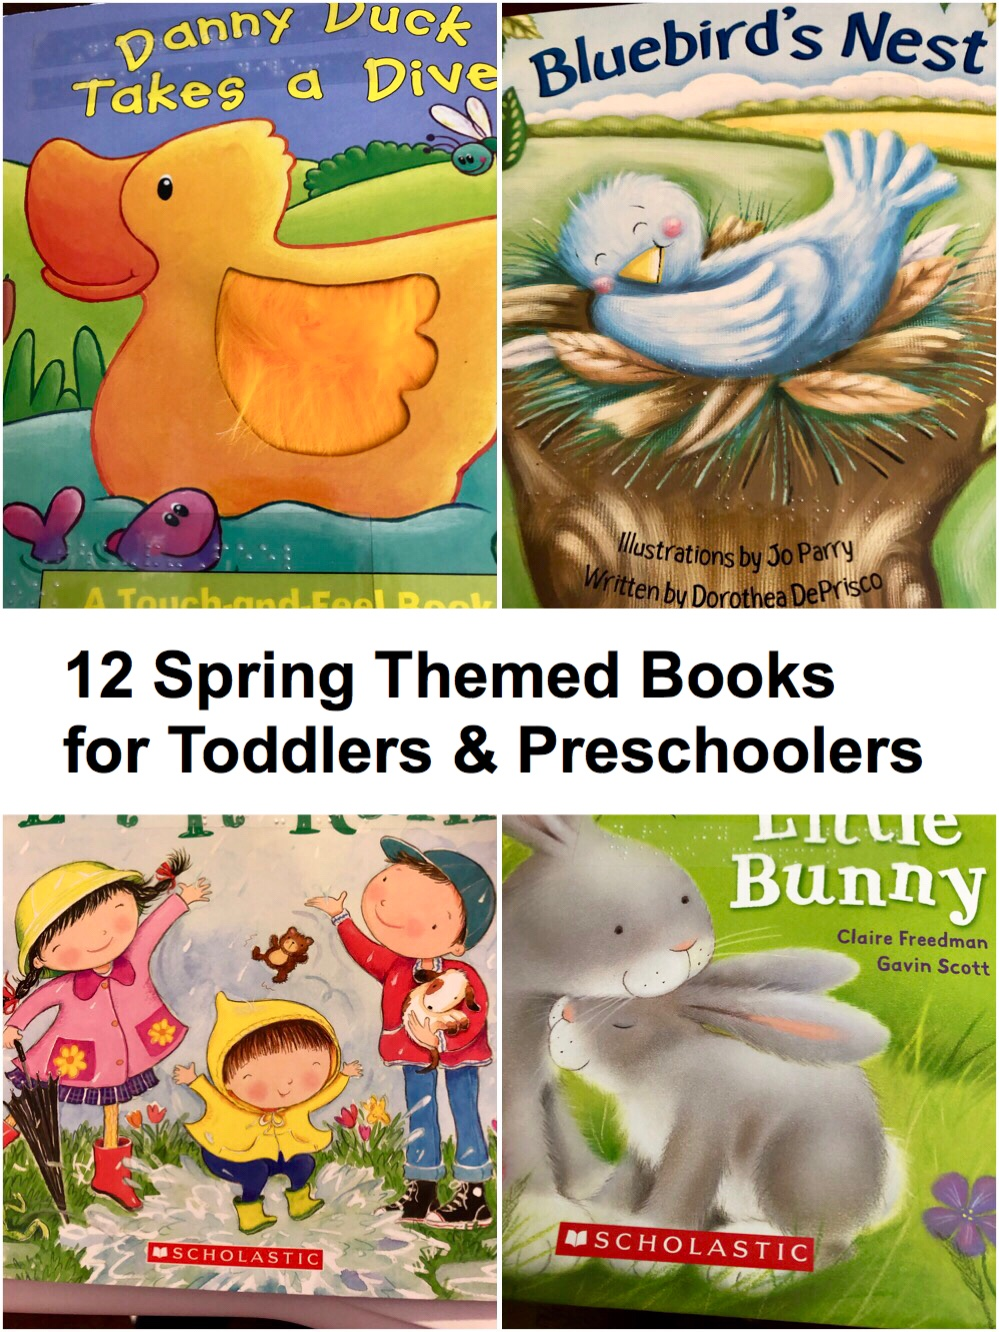 12 Spring Themed Books for Toddlers and Preschoolers pin